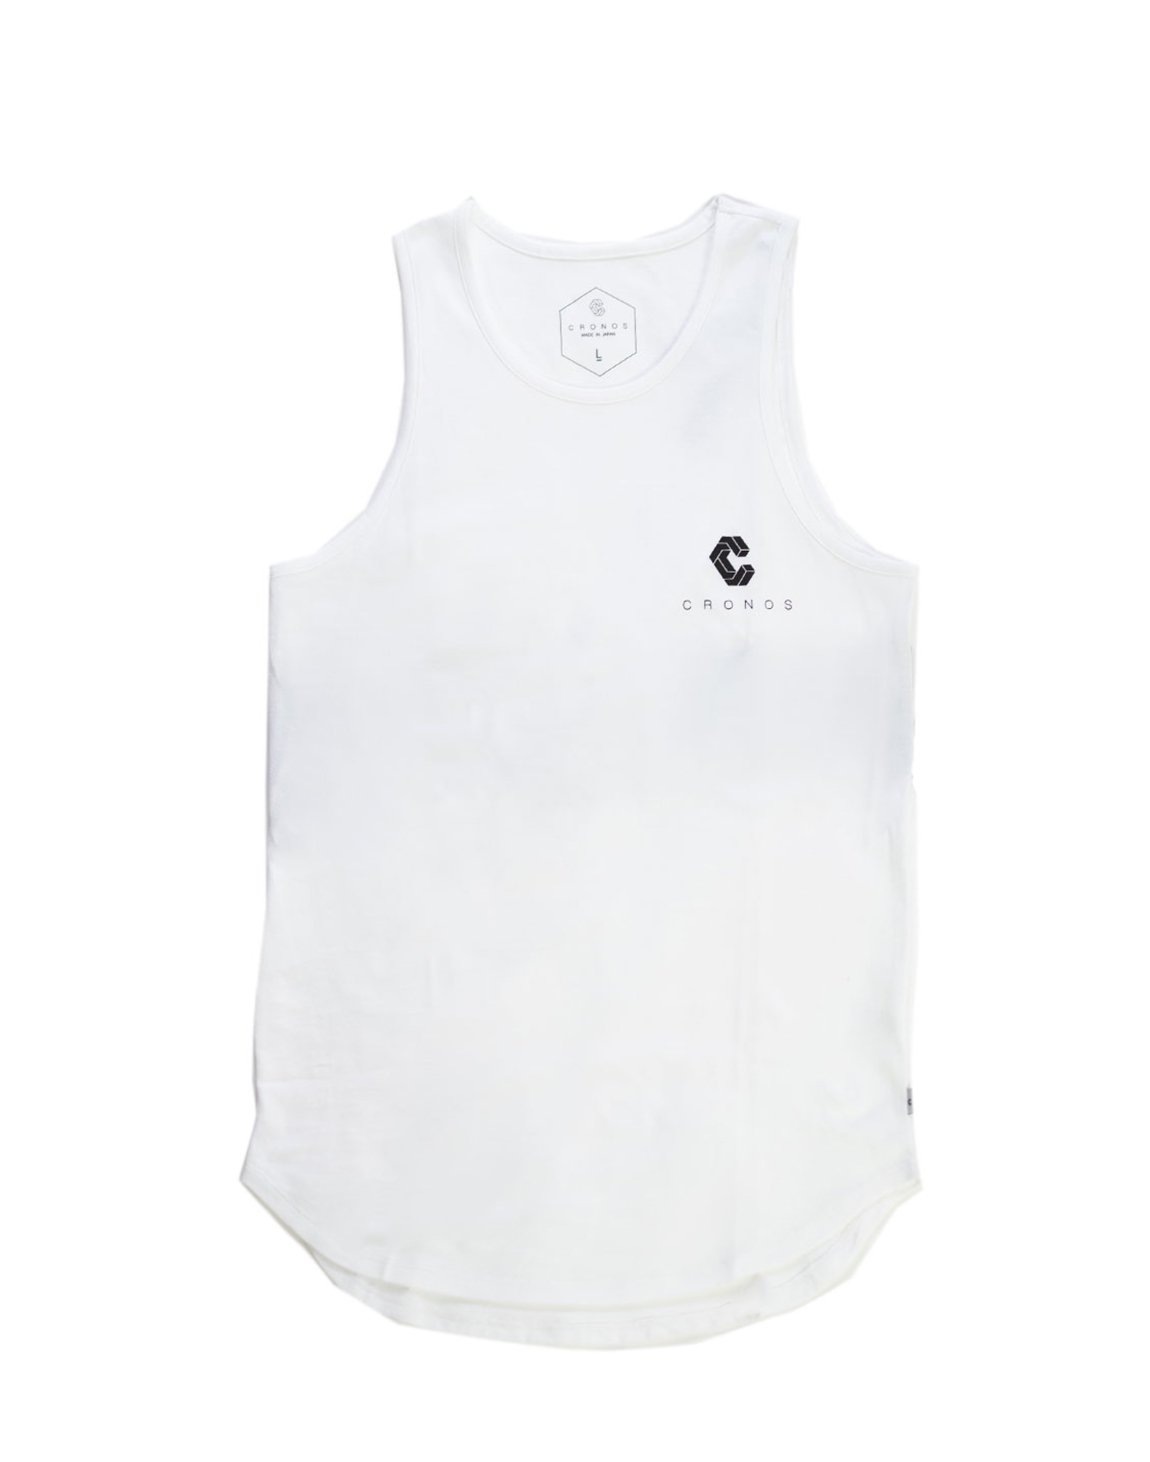 <img class='new_mark_img1' src='https://img.shop-pro.jp/img/new/icons1.gif' style='border:none;display:inline;margin:0px;padding:0px;width:auto;' />CRNS BACK BIG LOGO TANK TOP 【WHITE】